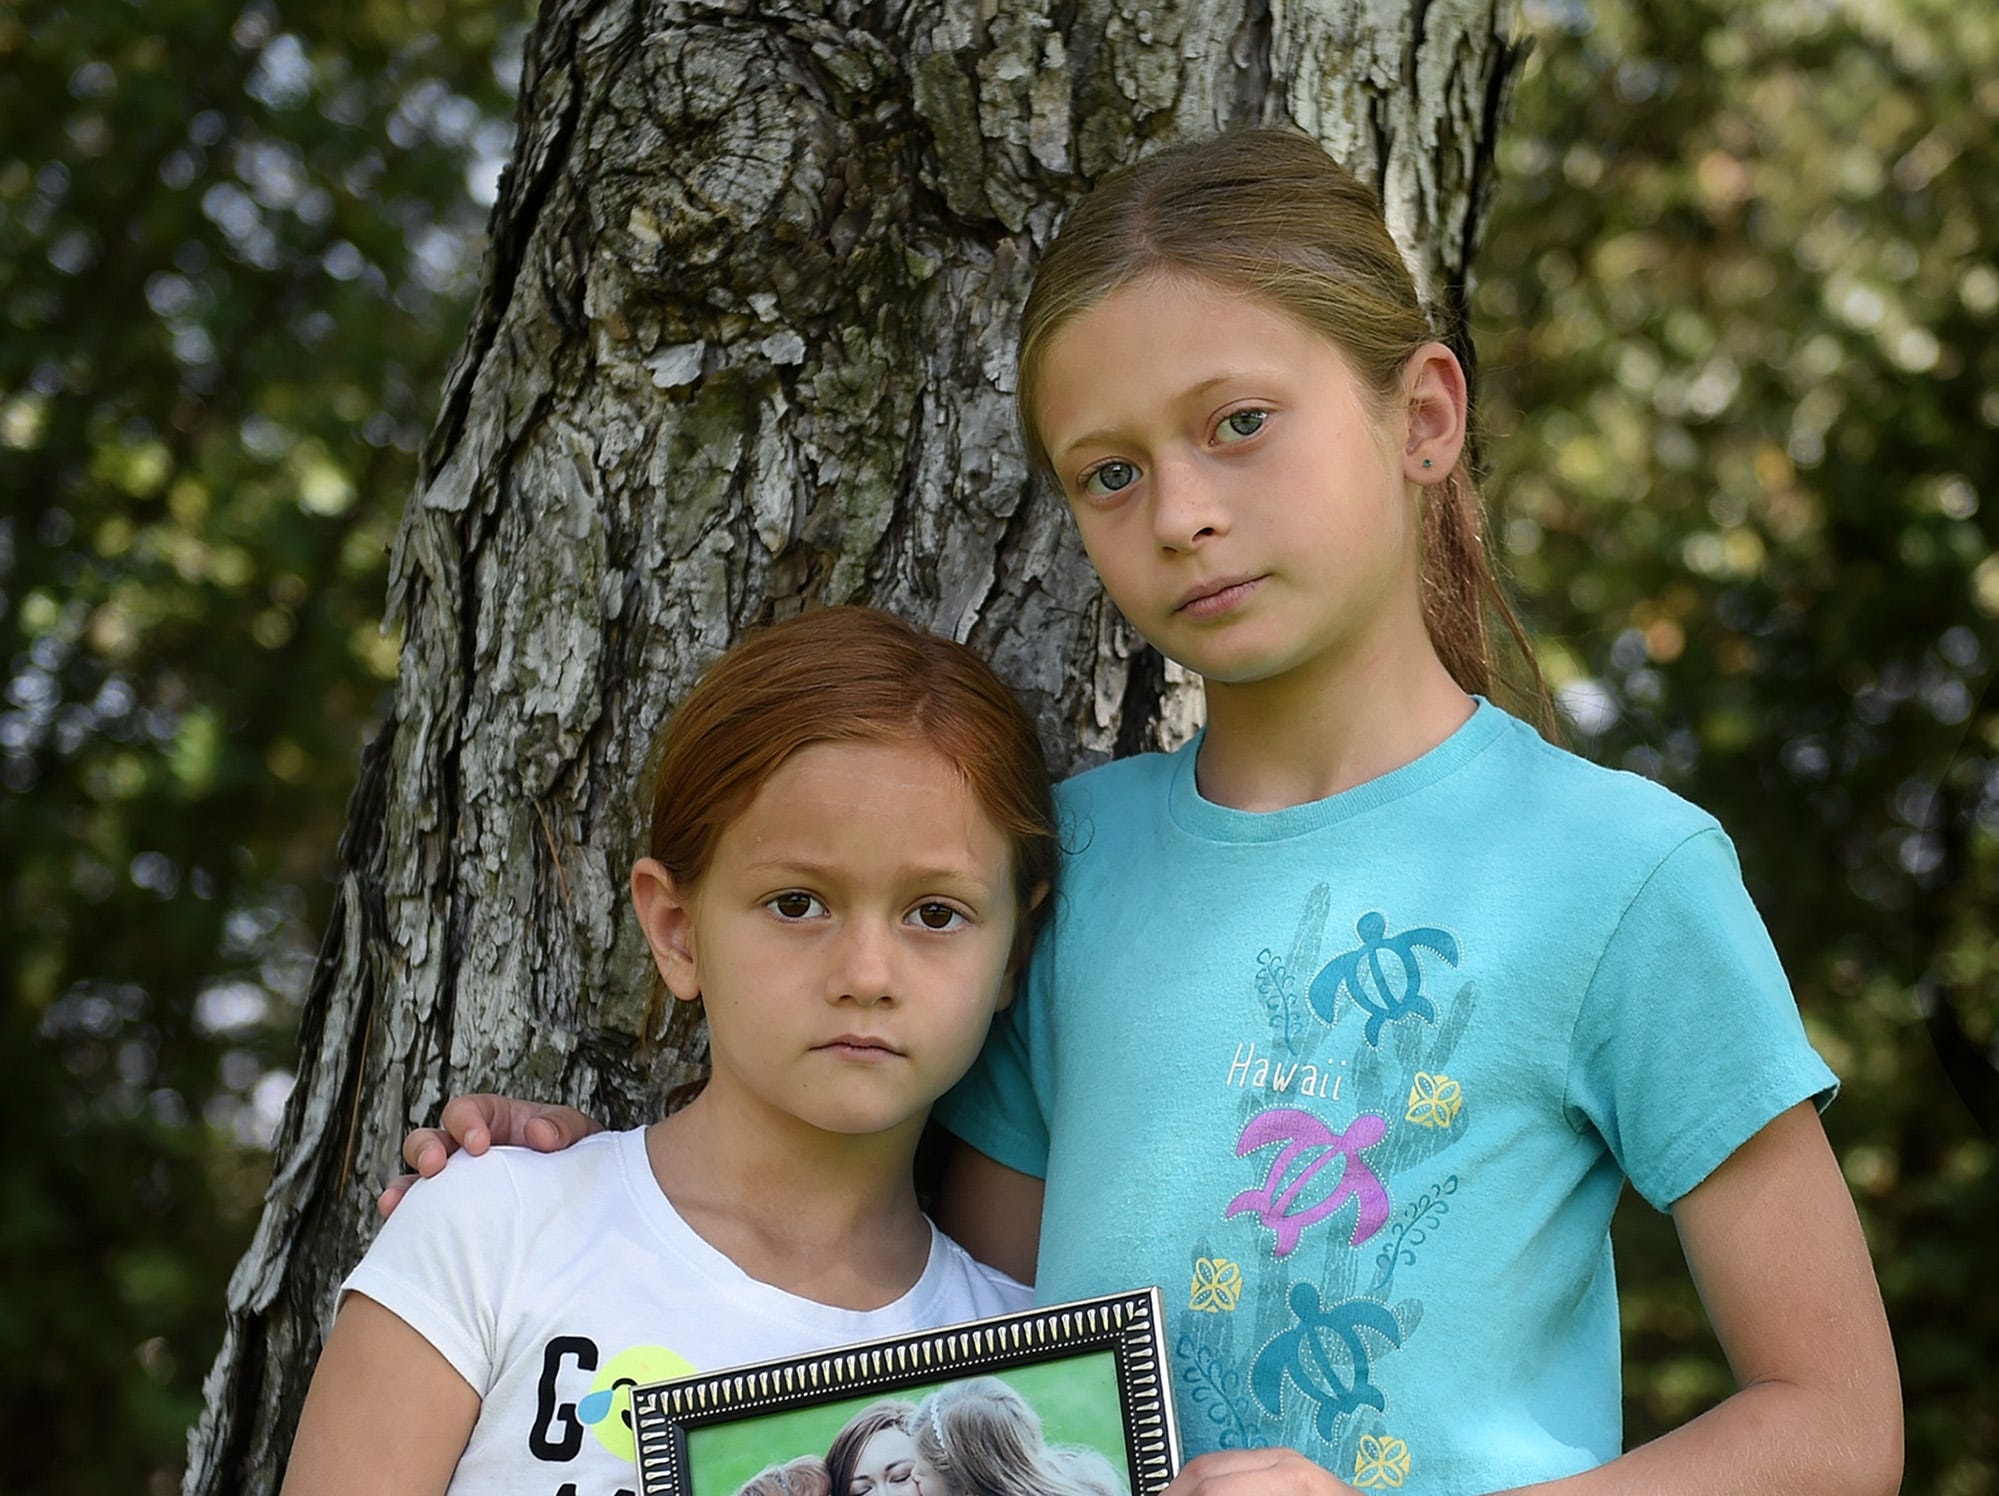 Holly, 7, left, and her sister Hannah Ephrom, 9, pose with a picture of their mom Sarah Herndon who died in January after a 4 year battle with cancer.